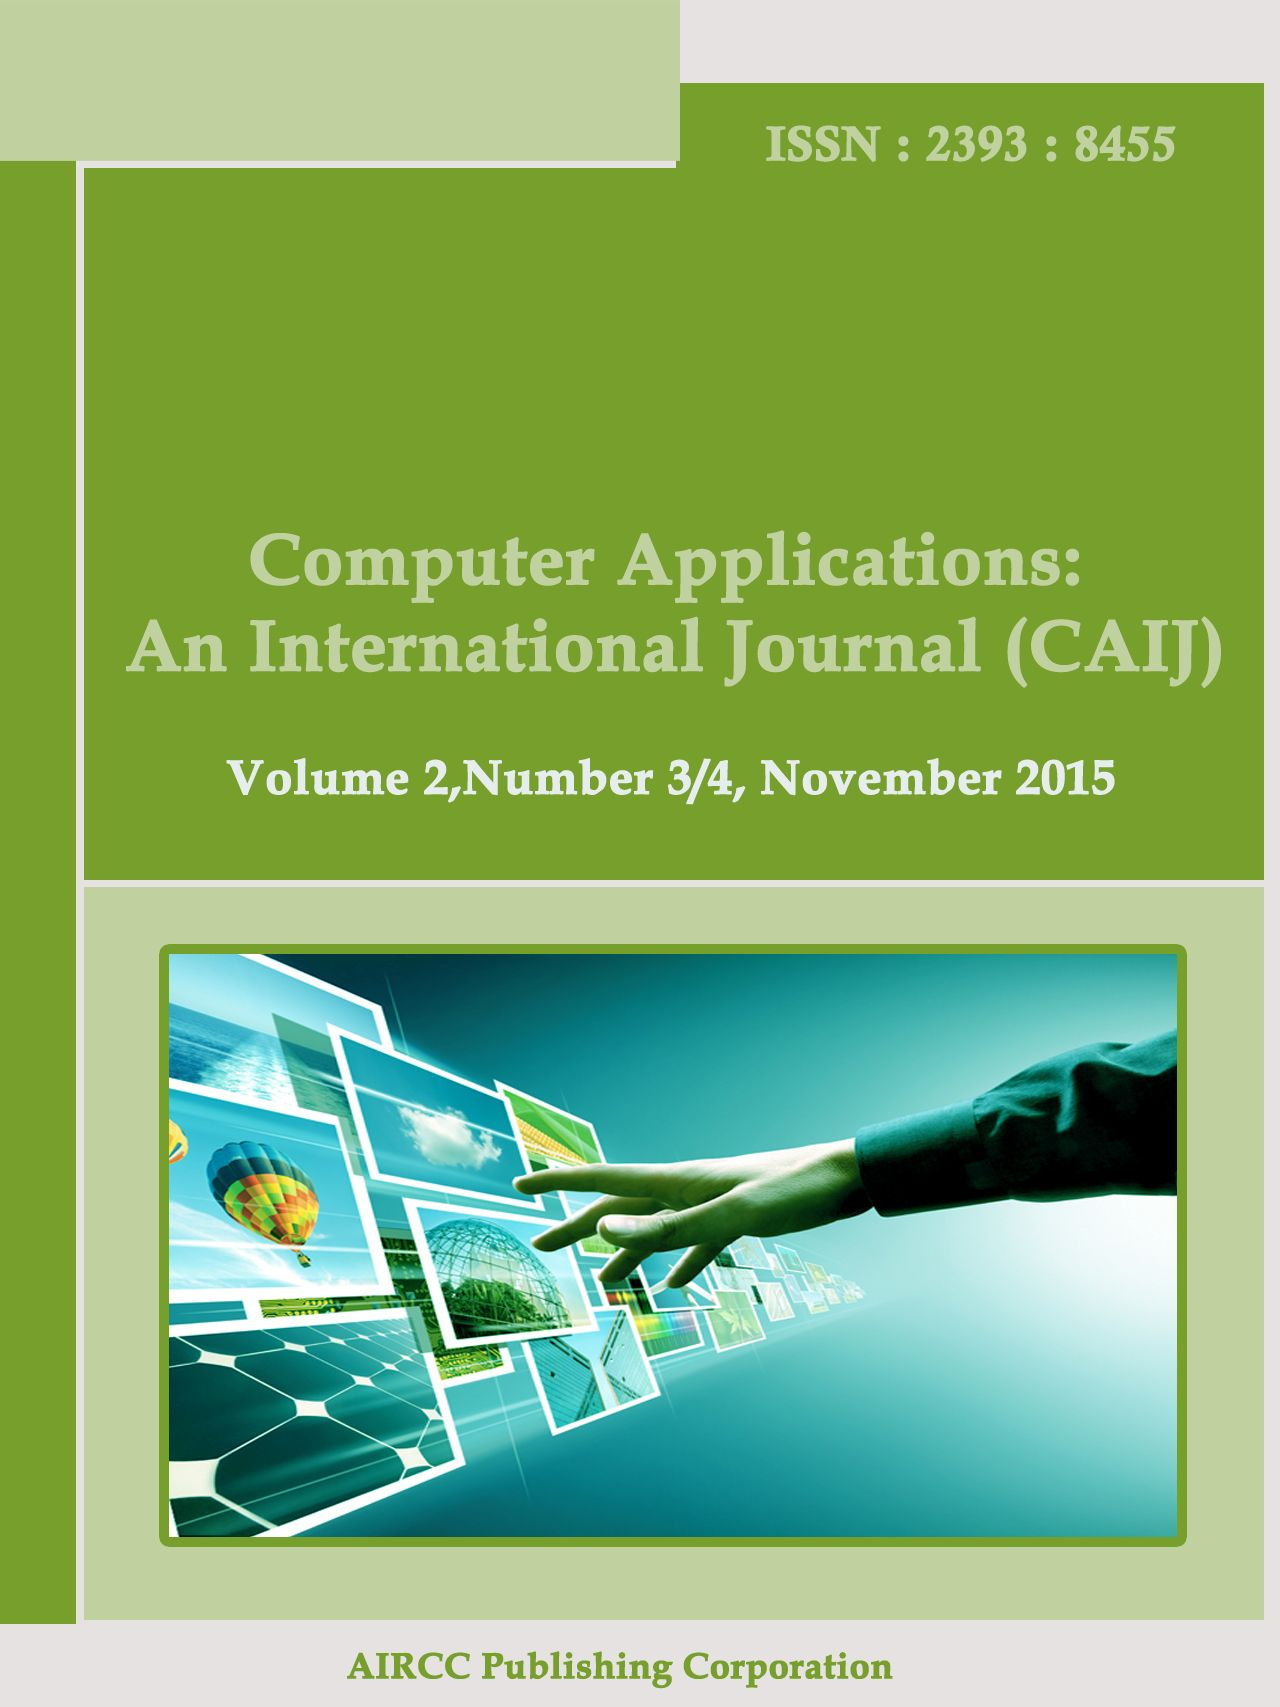 Computer applications an international journal caij is a quarterly open access peer reviewed journal that publishes articles which contribute new results